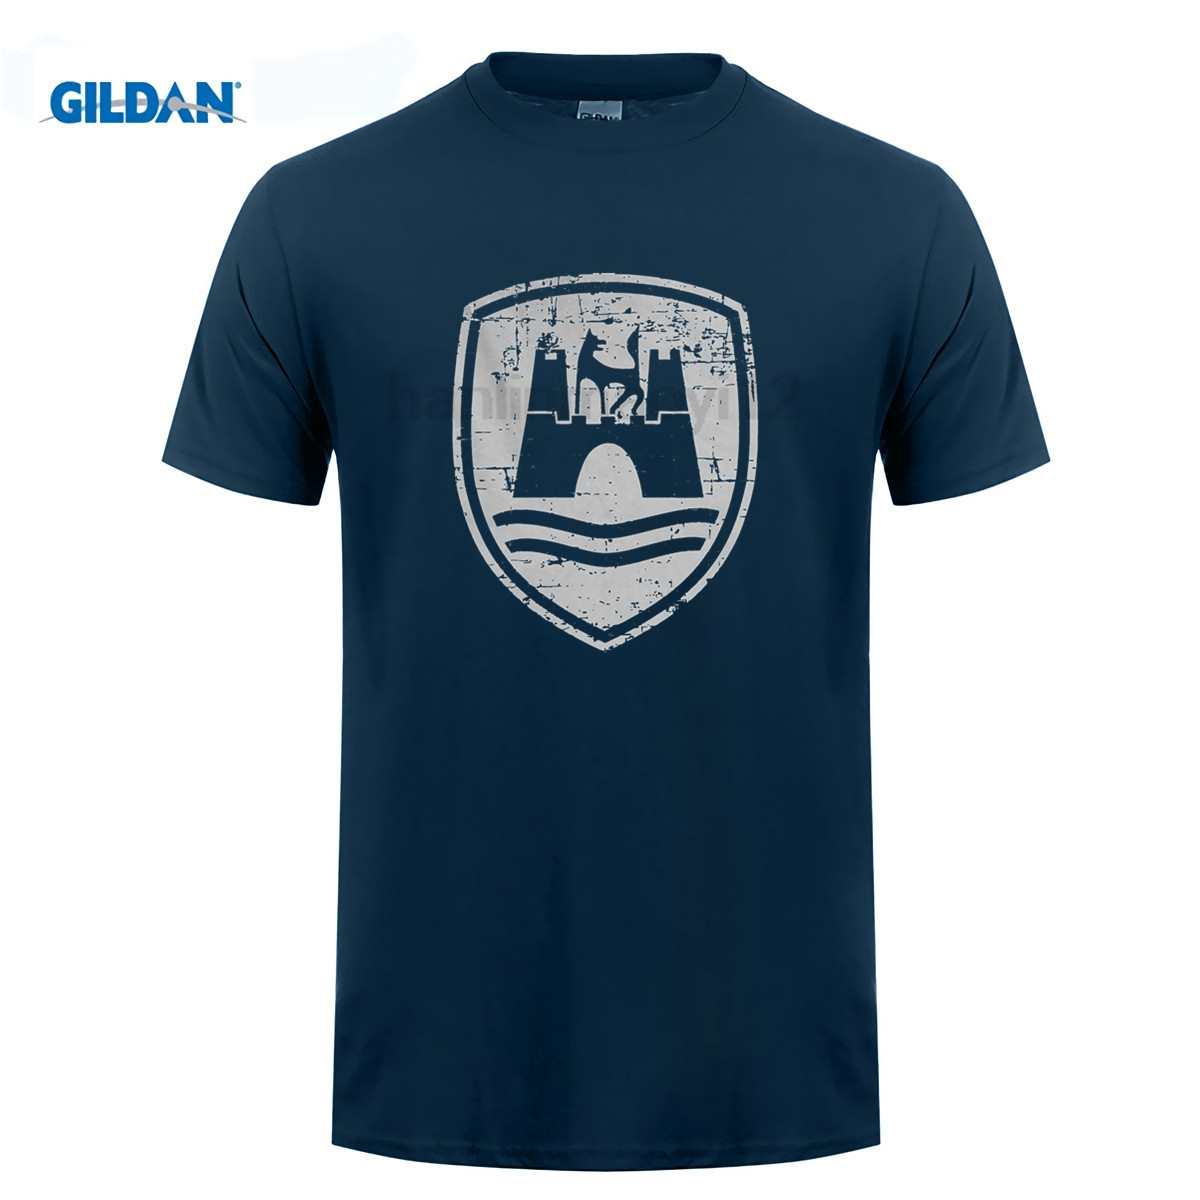 GILDAN men short sleeve t shirt Classico Di Wolfsburg, Uomo Campervan T-shirt Cotton T-Shirt Fashion T Shirt